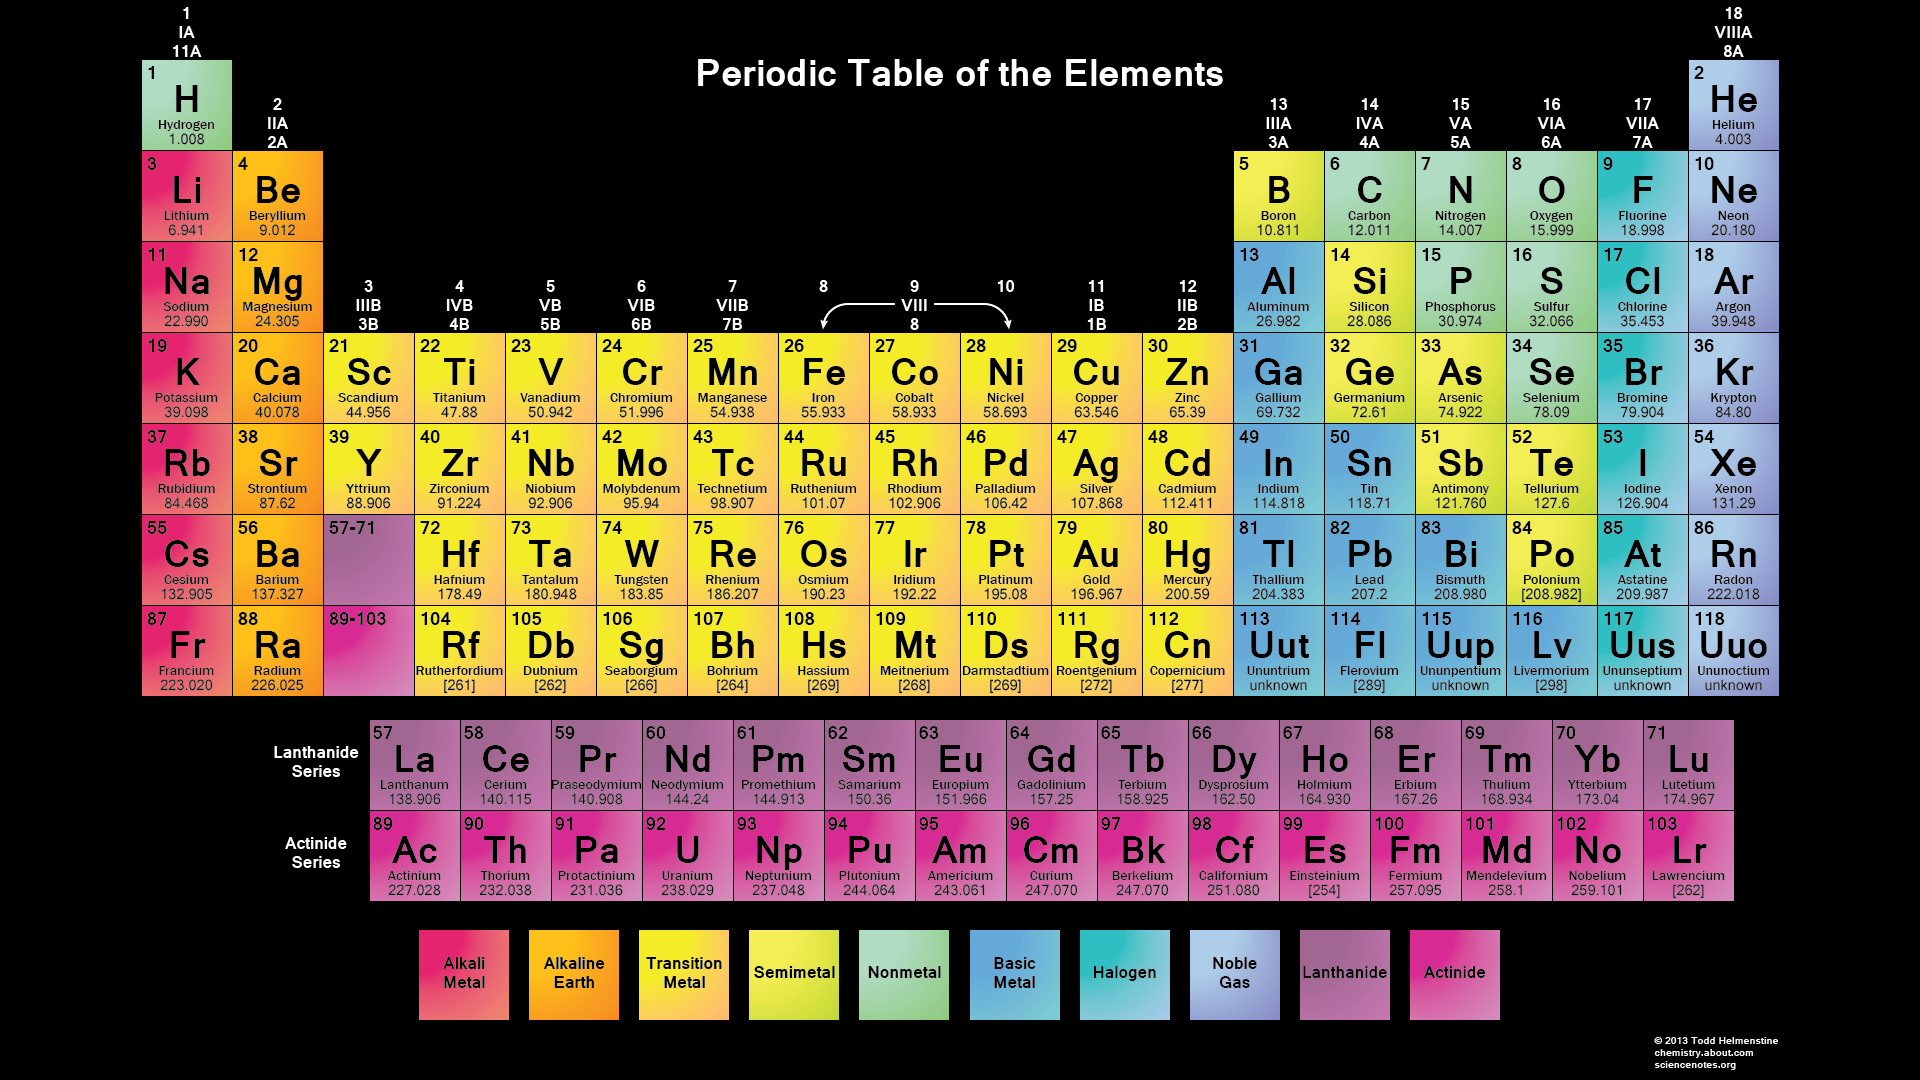 Periodic table wallpaper high resolution 73 images 1920x1080 periodic table wallpaper high resolution wallpapersafari urtaz Image collections